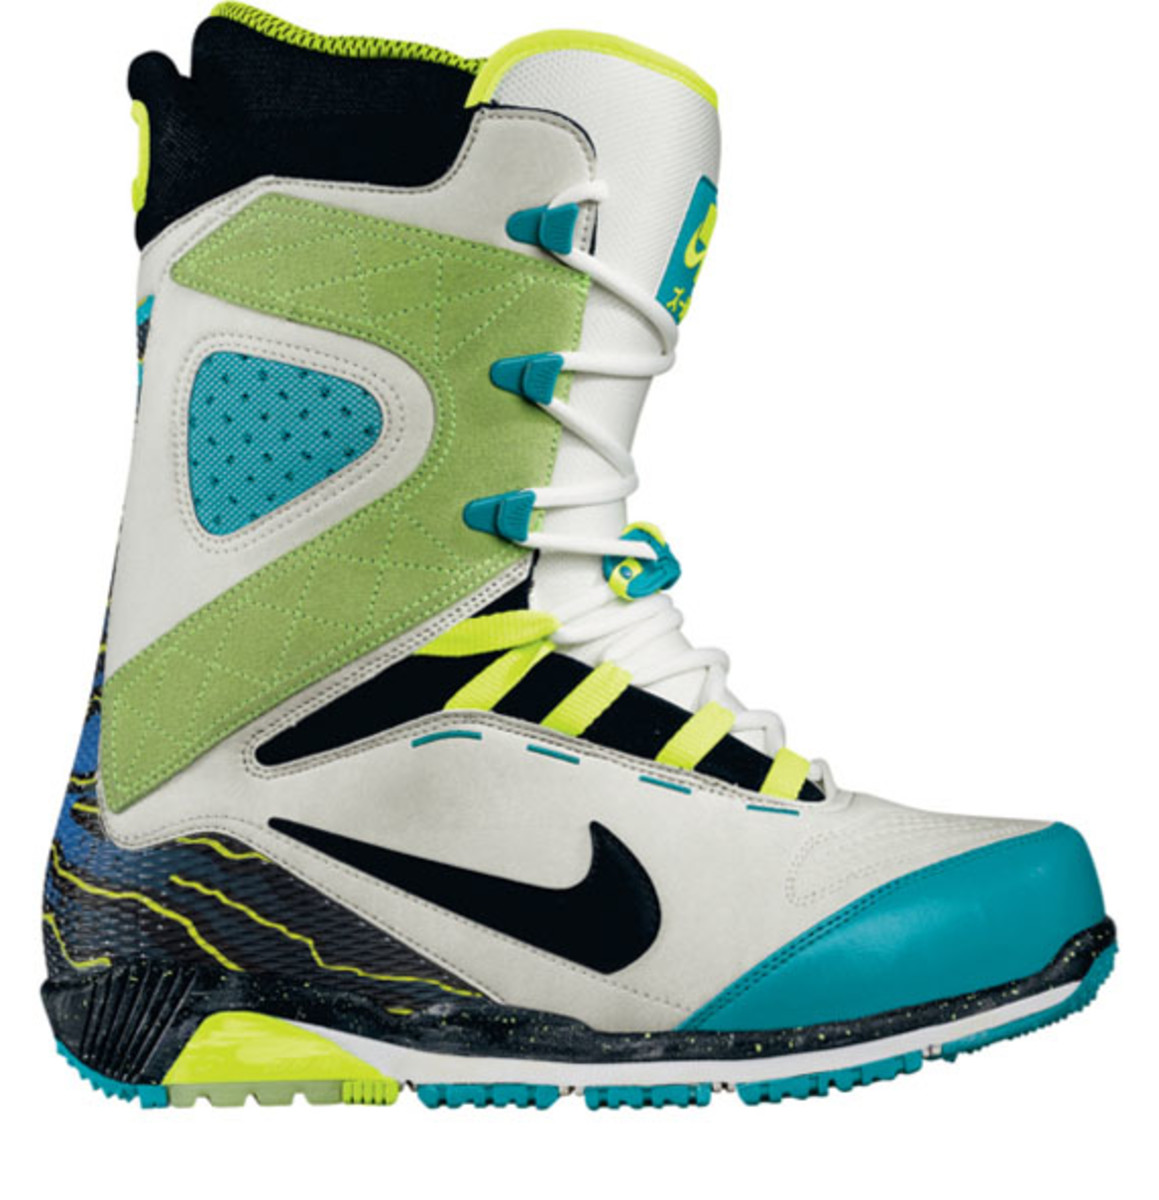 nike-snowboarding-boots-8